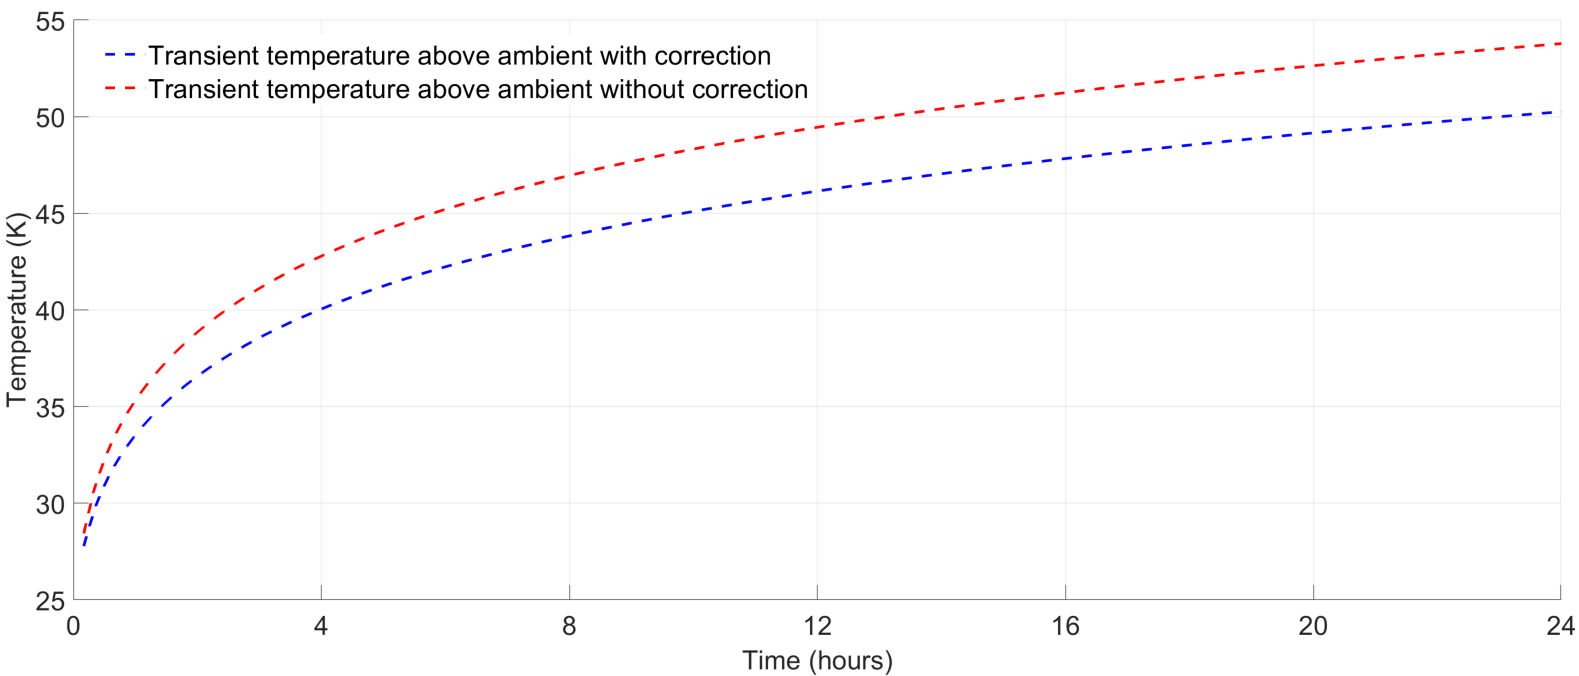 Fig. 11 – Variation of conductor temperature above ambient with and without correction factor